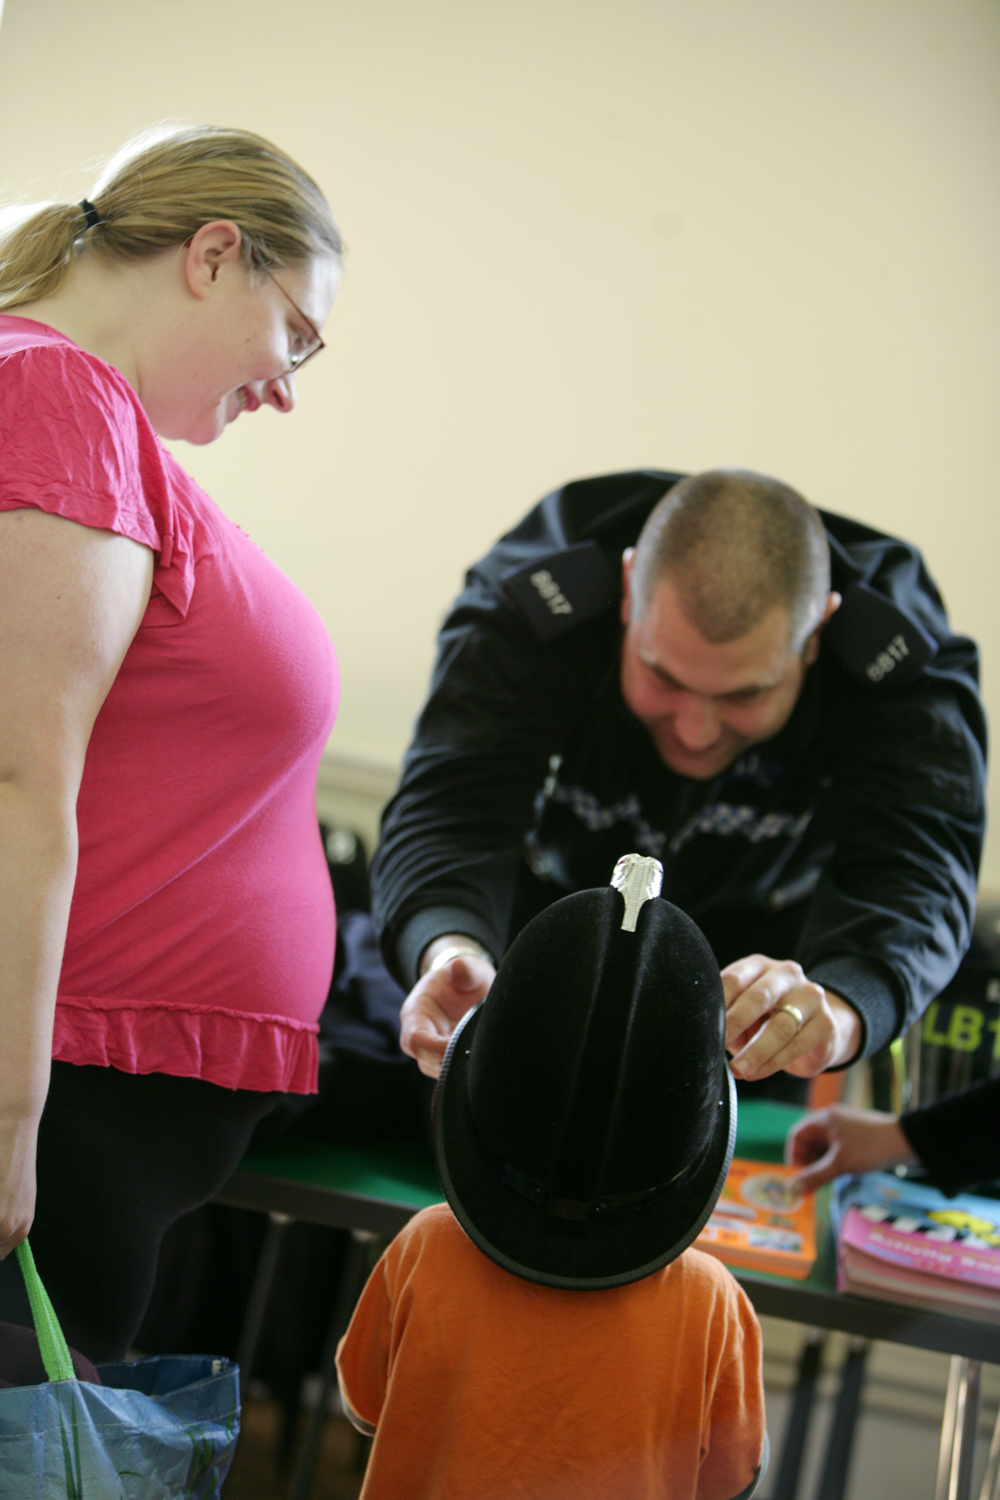 PICTORIAL_BERWICK_bookstart-heatherslaw-funded-day-out-educational-extended-services-lorna-chappell-organised-fire-police-9762.jpg